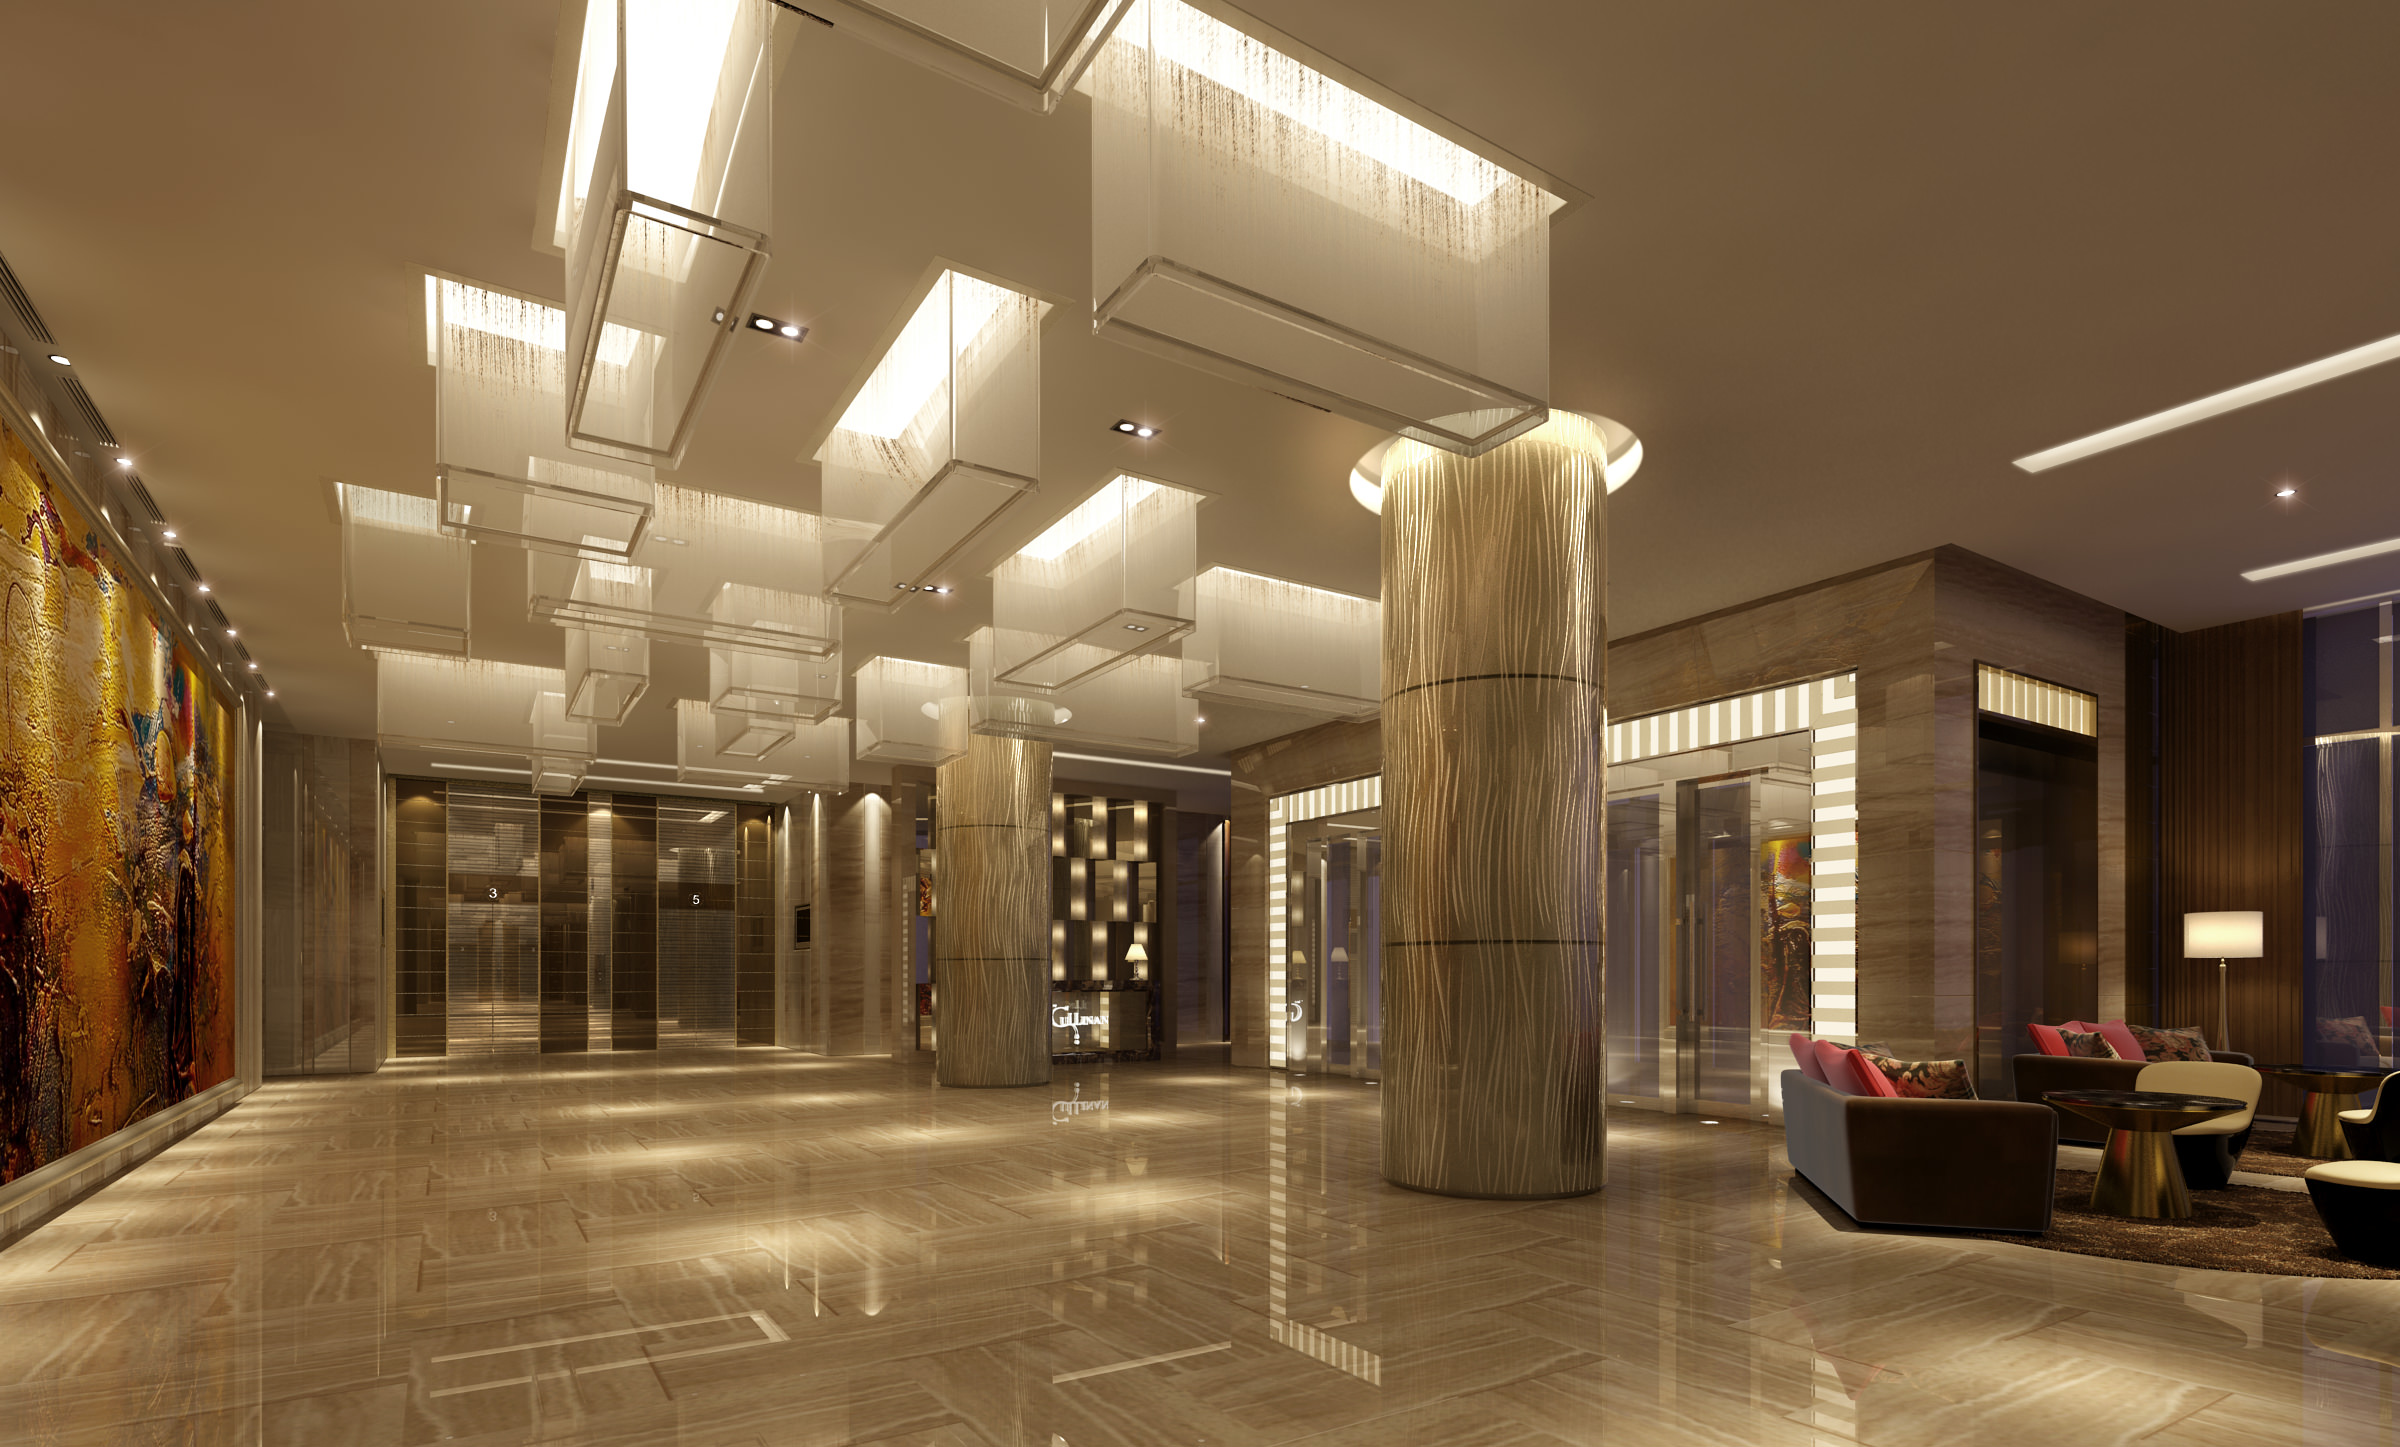 fancy lighting. hall with fancy ceiling lights 3d model max 1 lighting